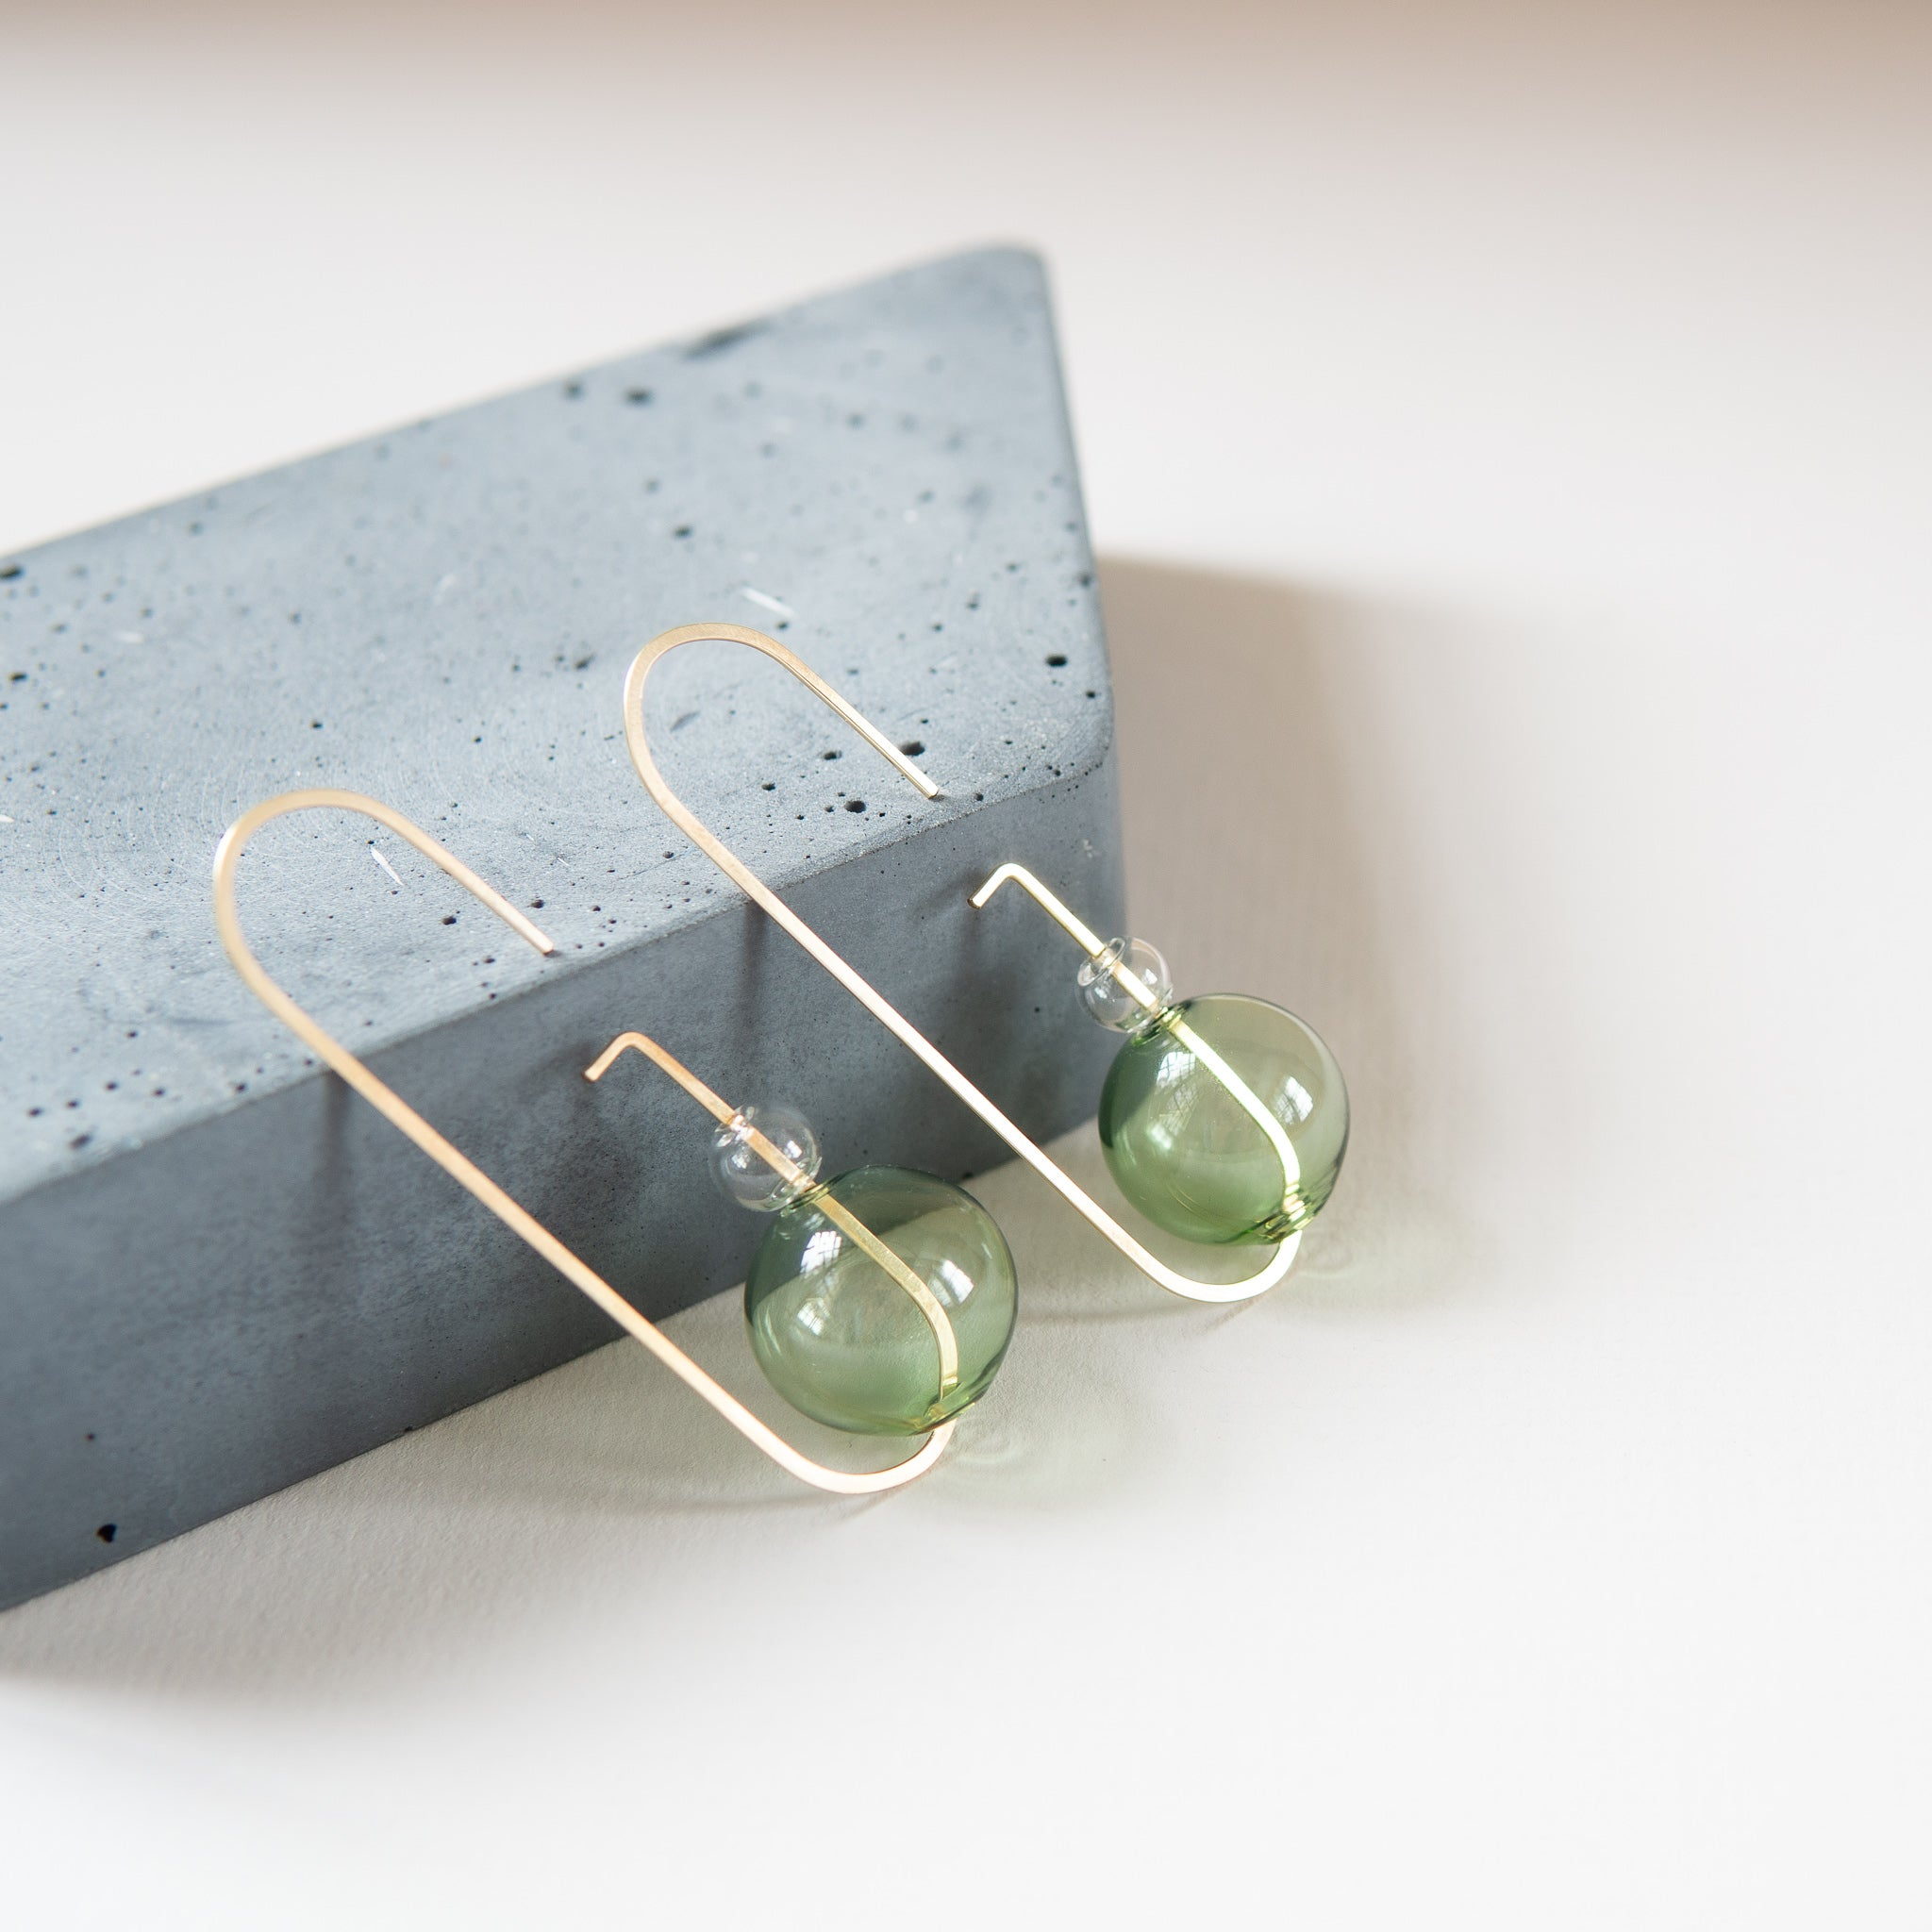 HyWorks: Loop Earrings No. 2